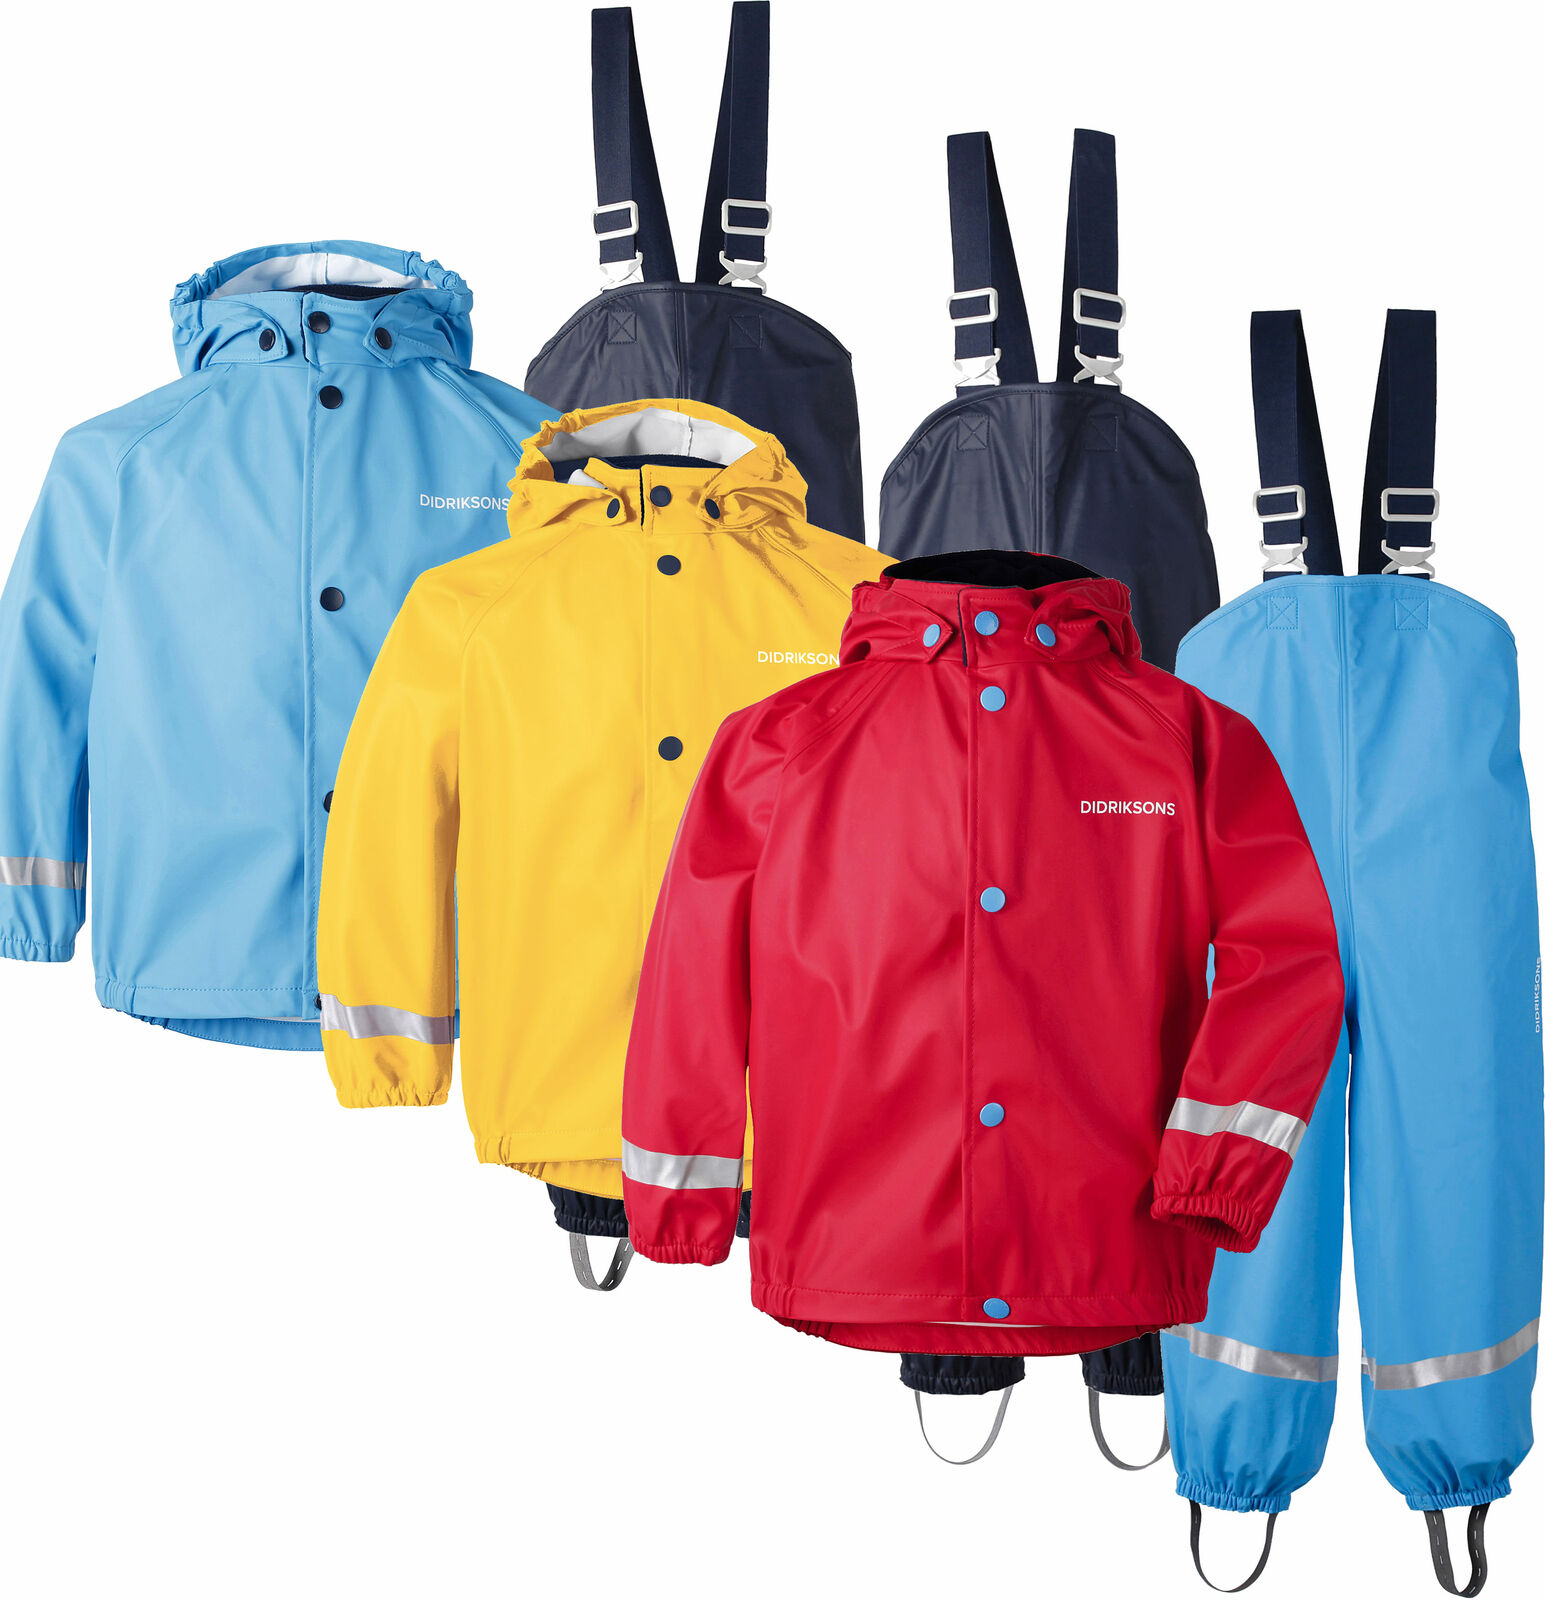 puhdistushinnat myynti vähittäiskauppias alkuun tuotemerkkejä Didriksons Slaskeman Kids Waterproof Set Jacket & Trousers PU Galon